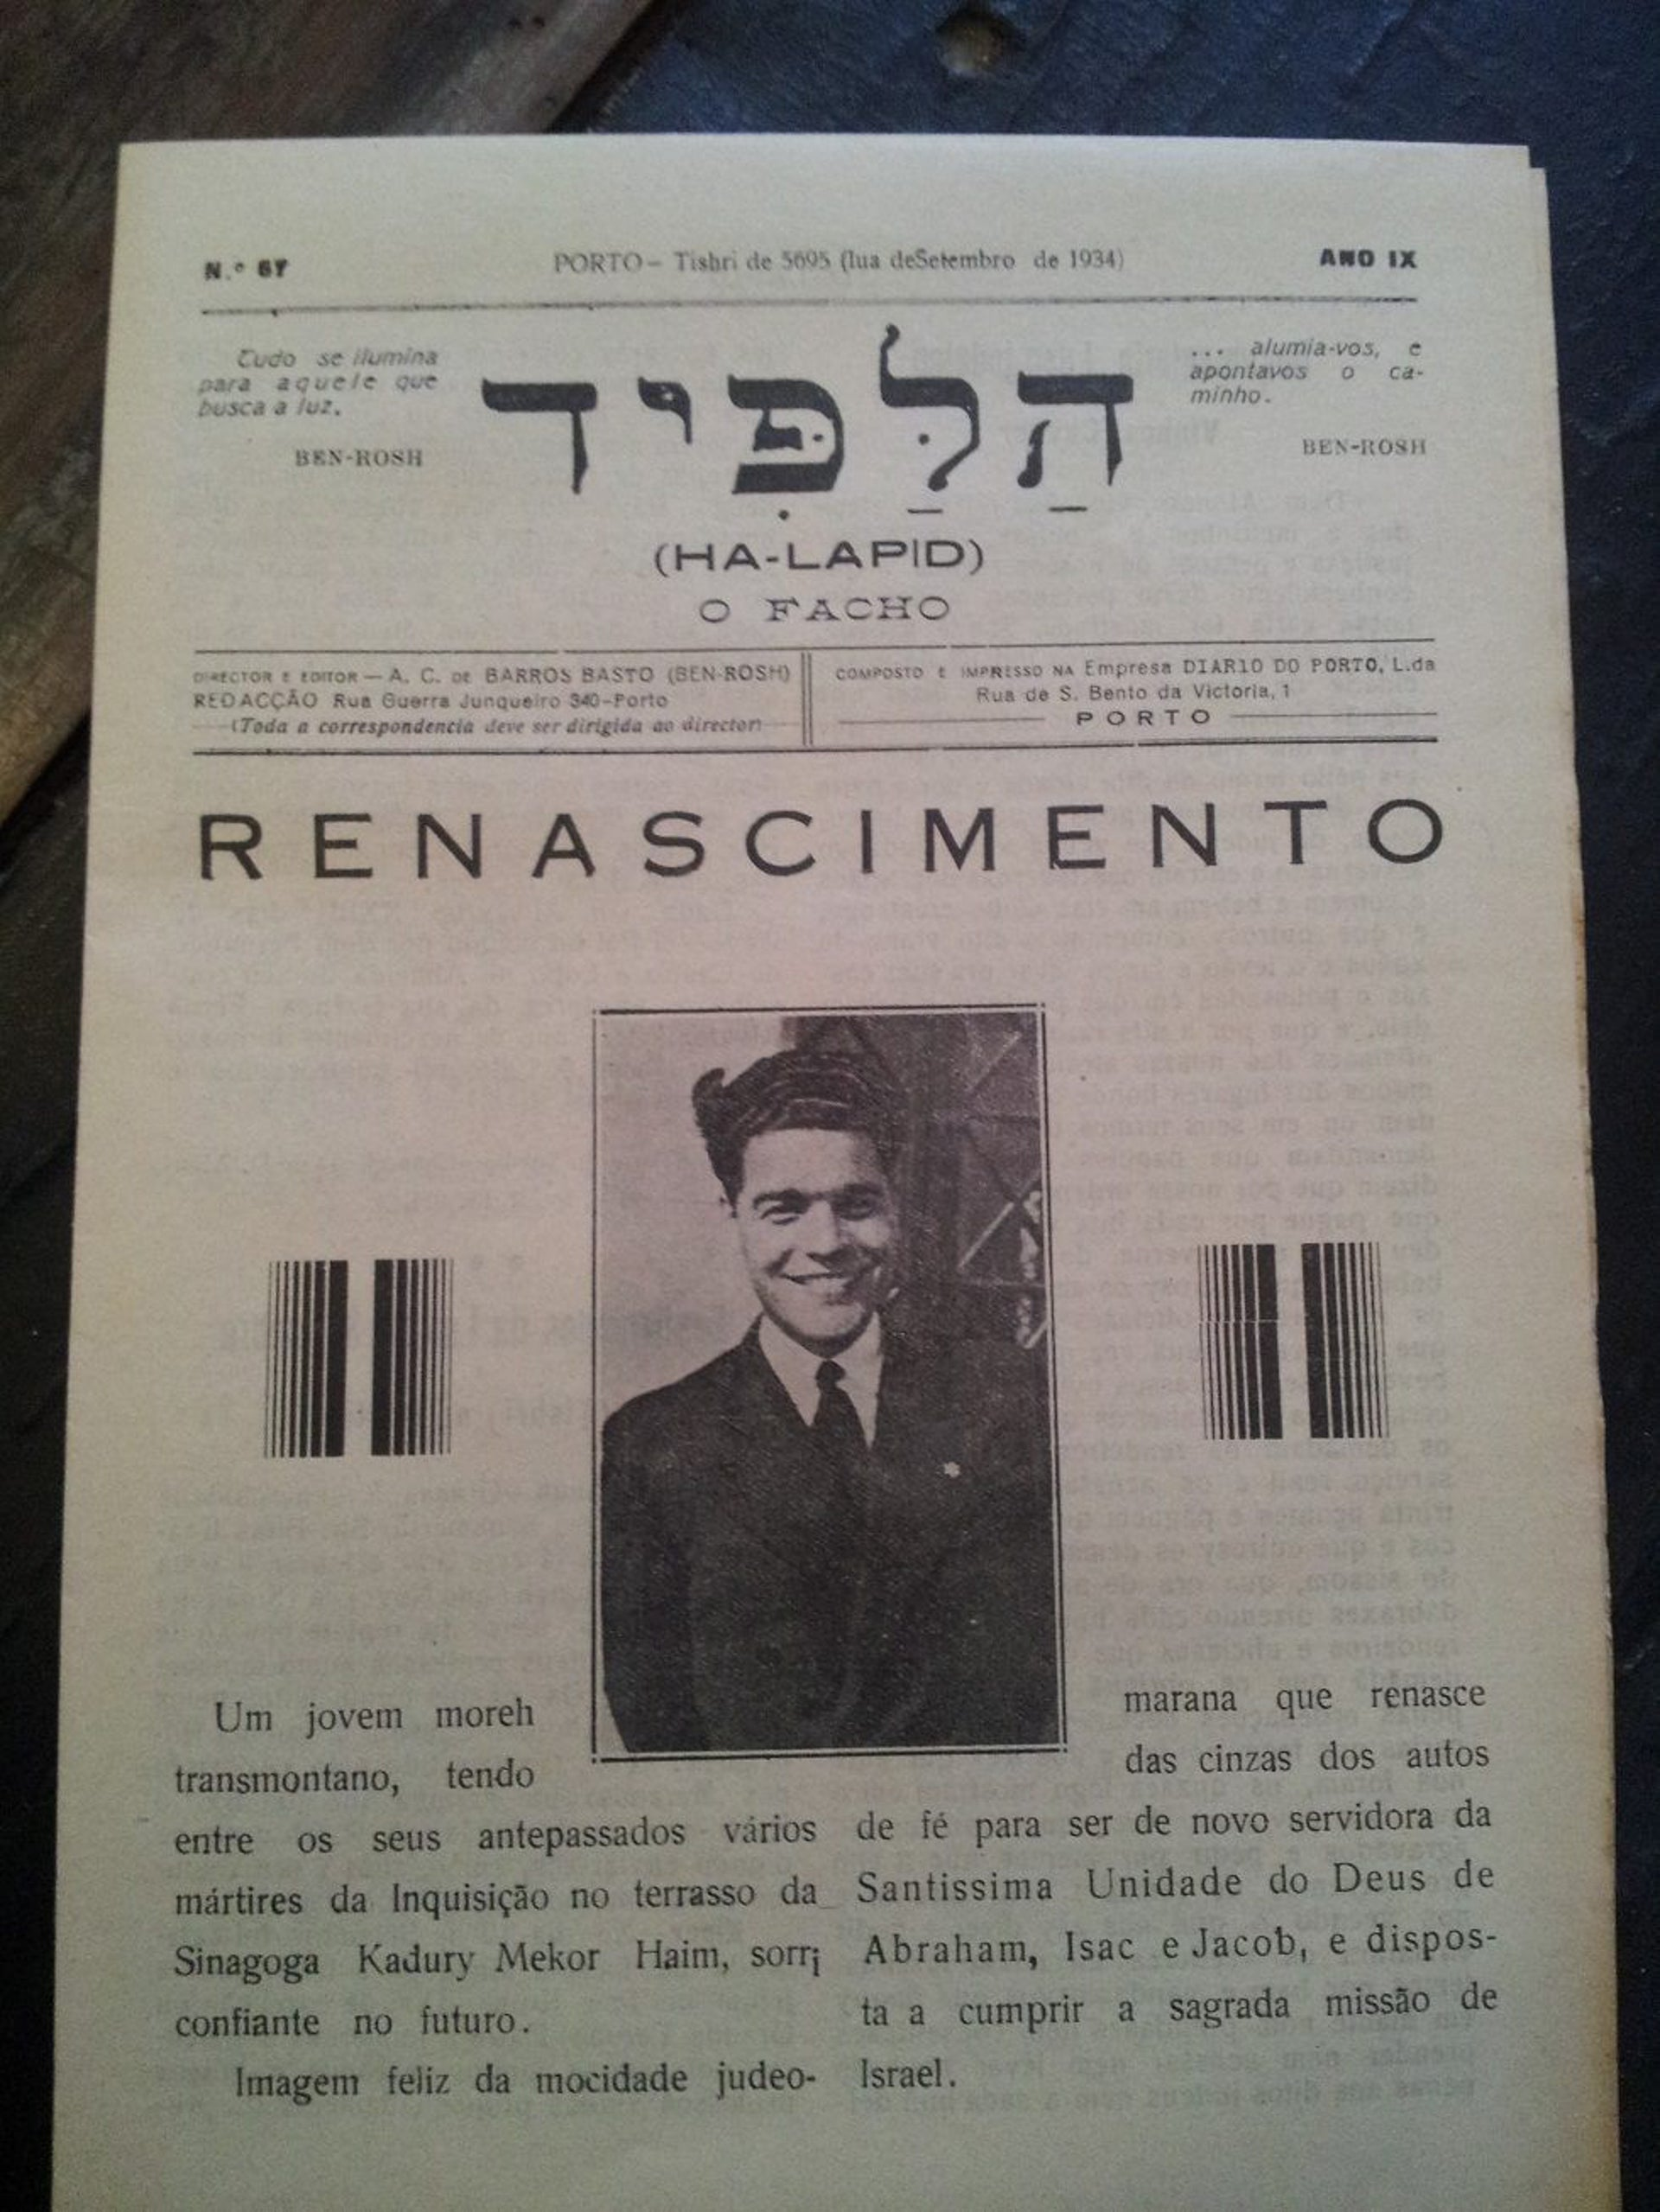 The cover of the Jewish journal Halapid, featuring Francisco Bráz Rodrigues, one of the founders of the Porto community.